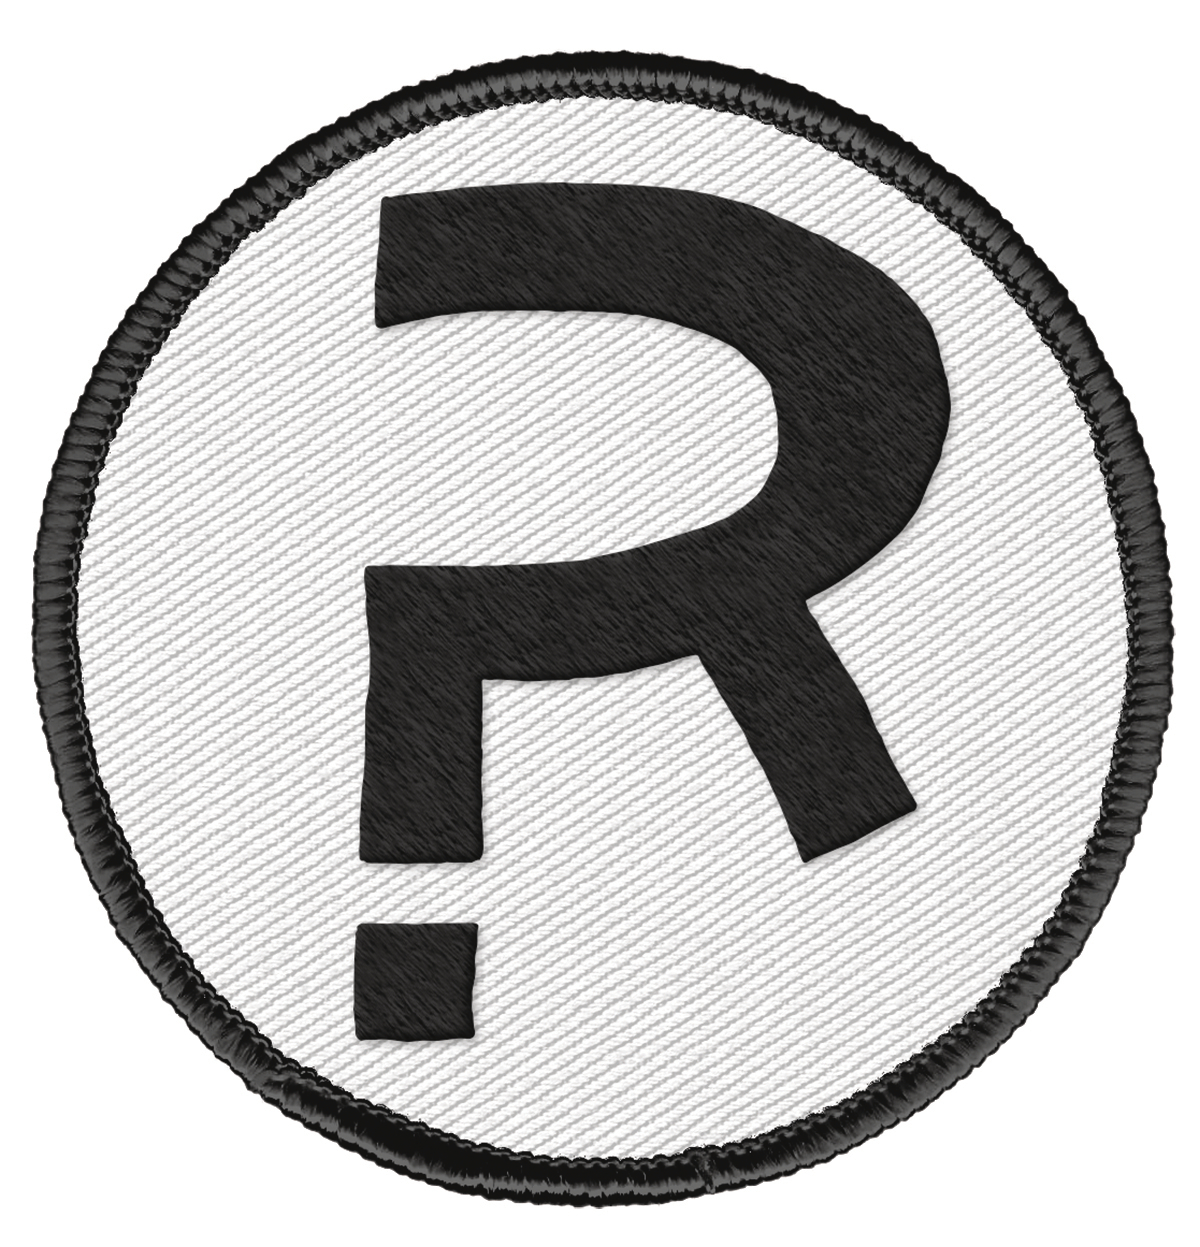 UMBRELLA ACADEMY PATCH RUMOR R LOGO (O/A)